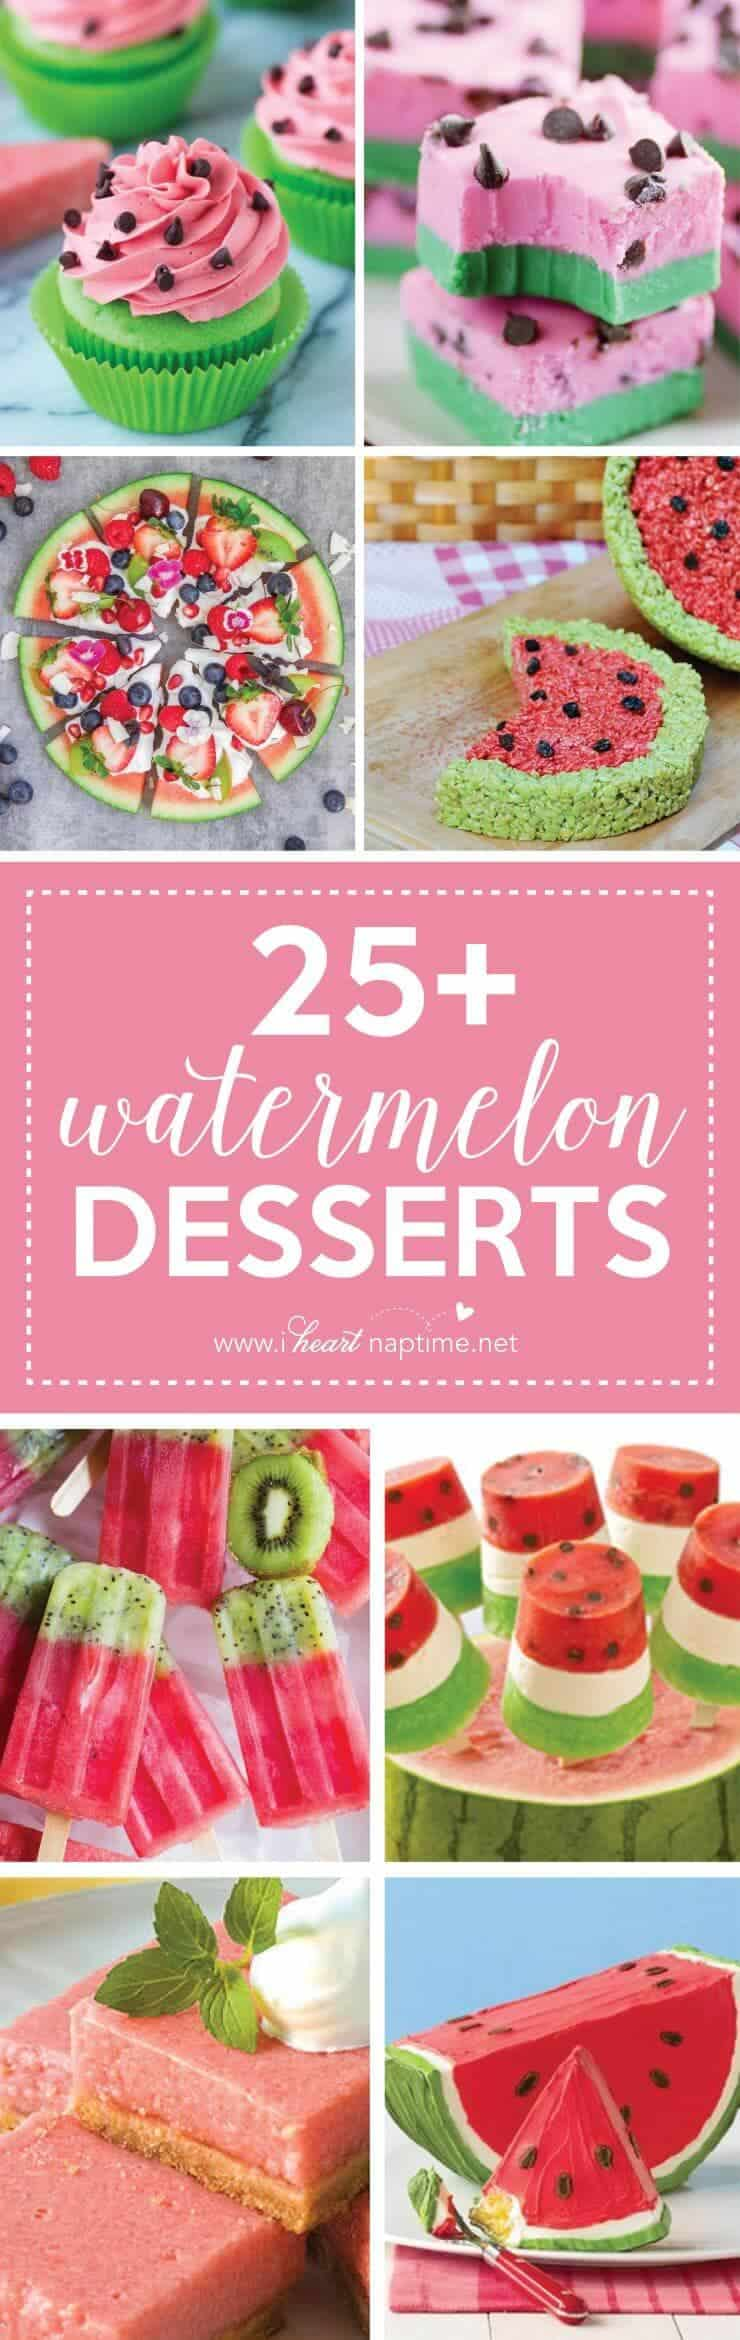 "25 Mouth-Watering Watermelon Desserts and Recipes...the perfect refreshment that shouts, ""Summertime is here!"""